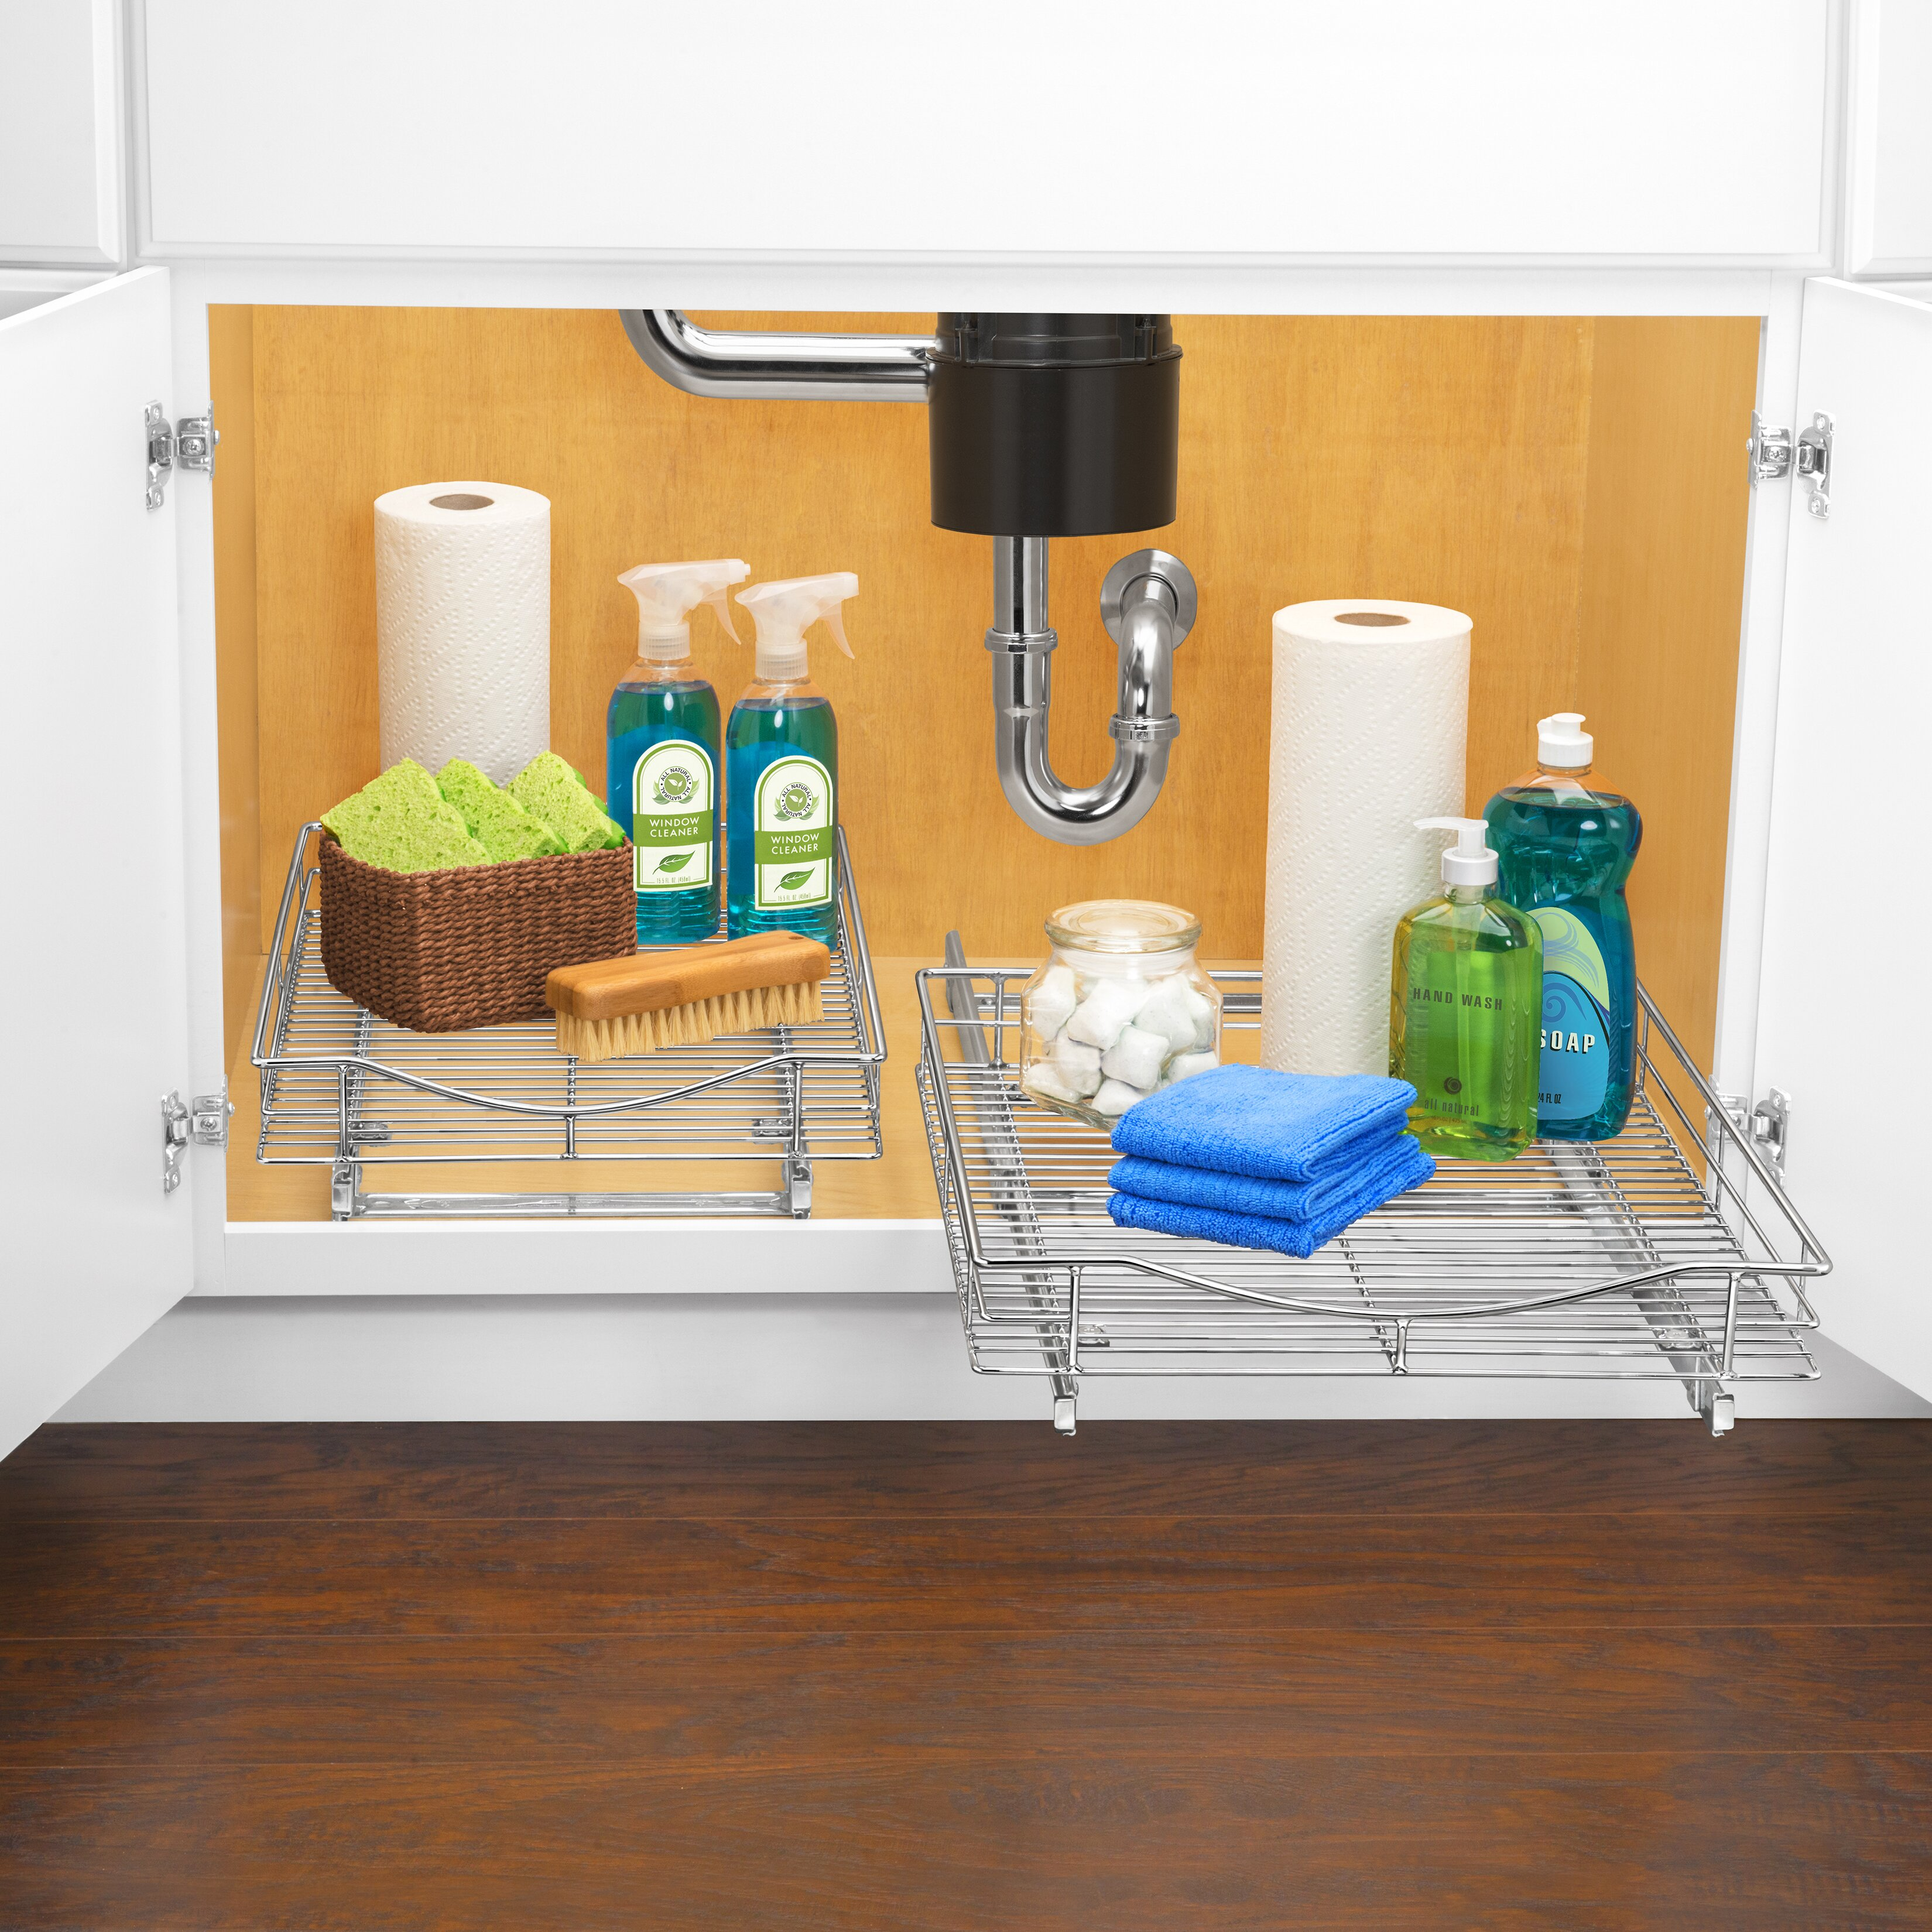 Lynk Roll Out Double Shelf: Lynk Roll Out Cabinet Organizer